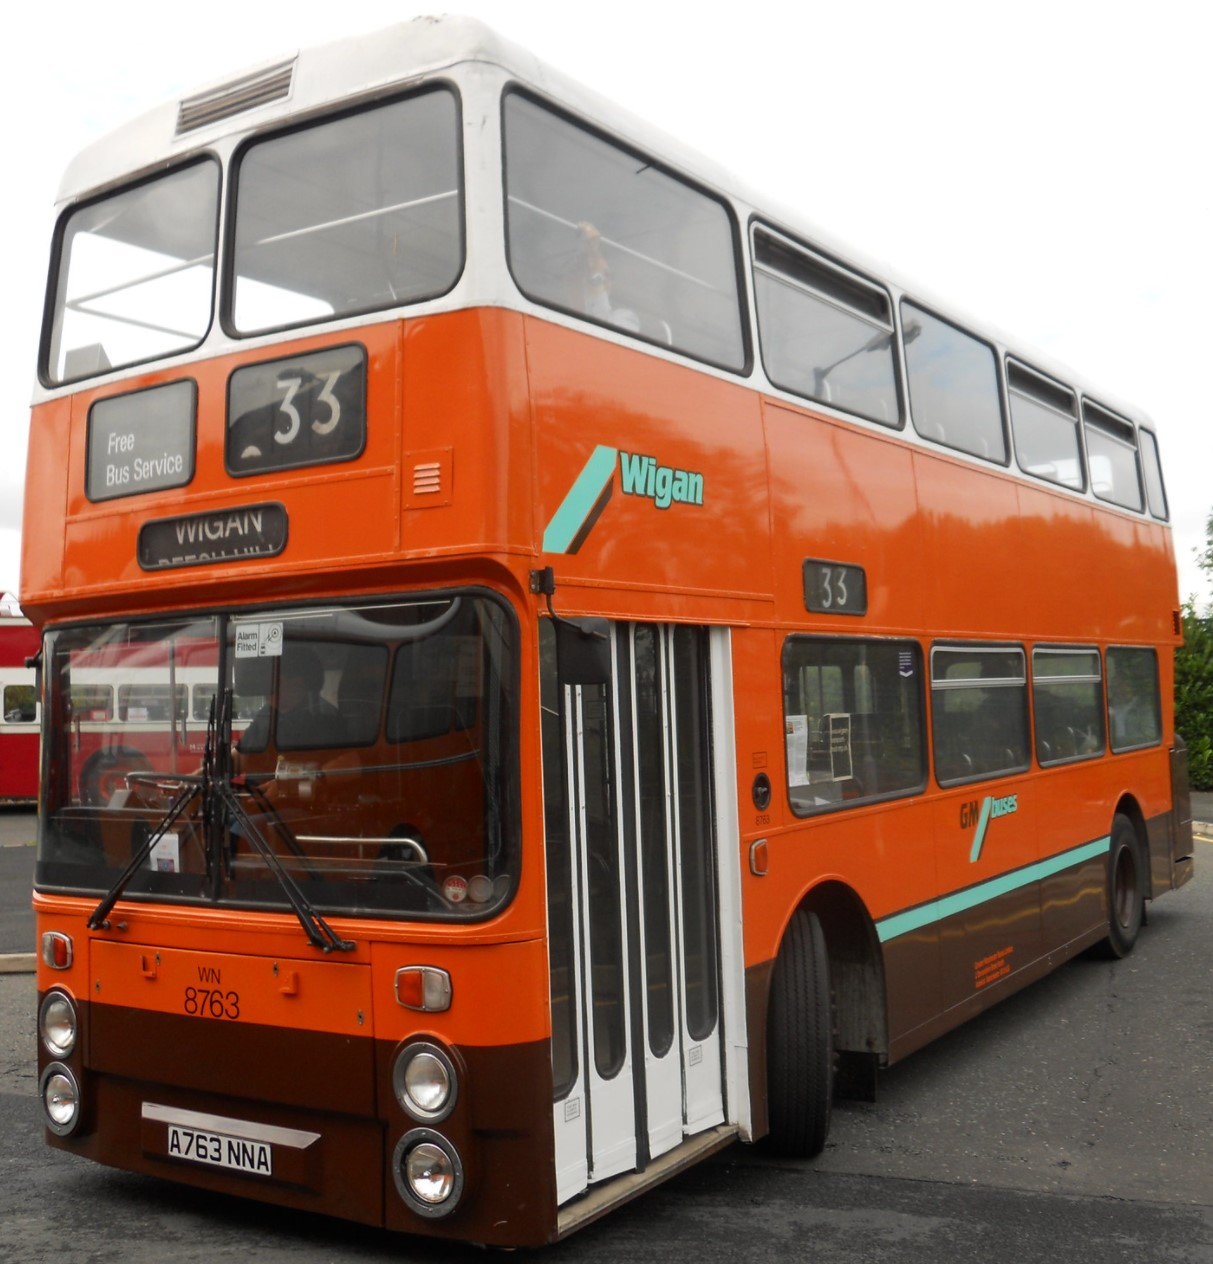 A763 NNA at Cheetham Hill, Manchester in September 2011. ©Mikey